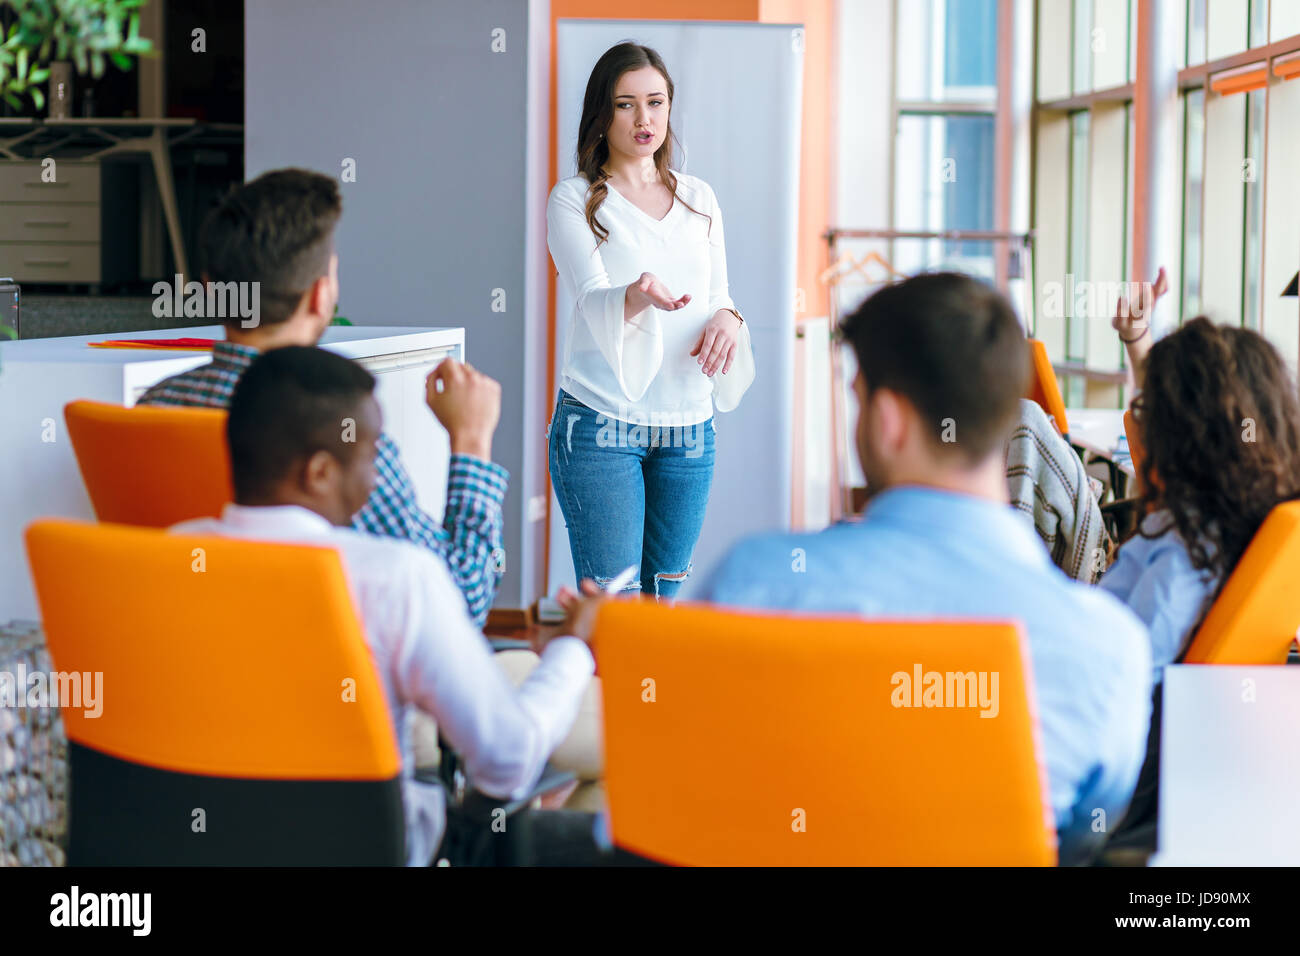 Pretty young business woman giving a presentation in conference or meeting setting. - Stock Image